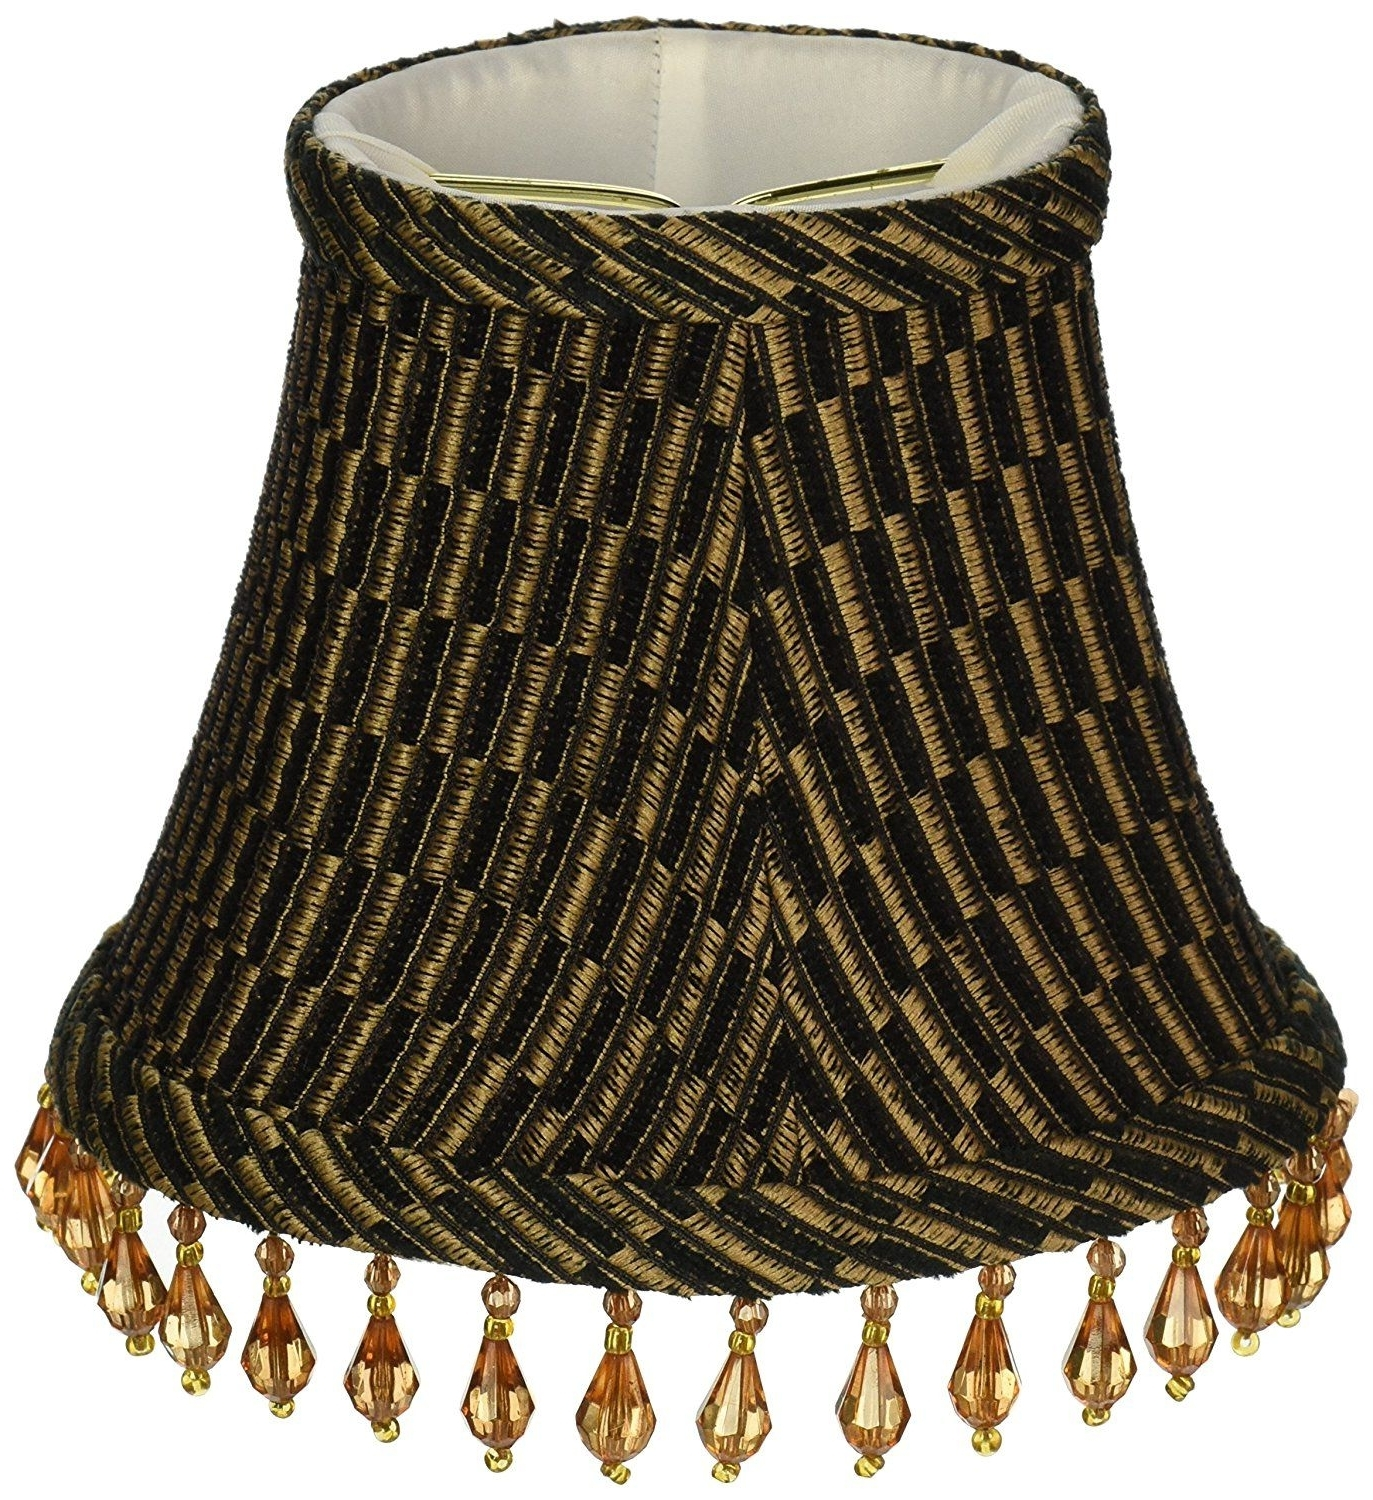 Lamp: Chandelier Lamp Shades Upgradelights Set Of 6 Barrel Shades 5 For Famous Clip On Chandelier Lamp Shades (View 10 of 20)